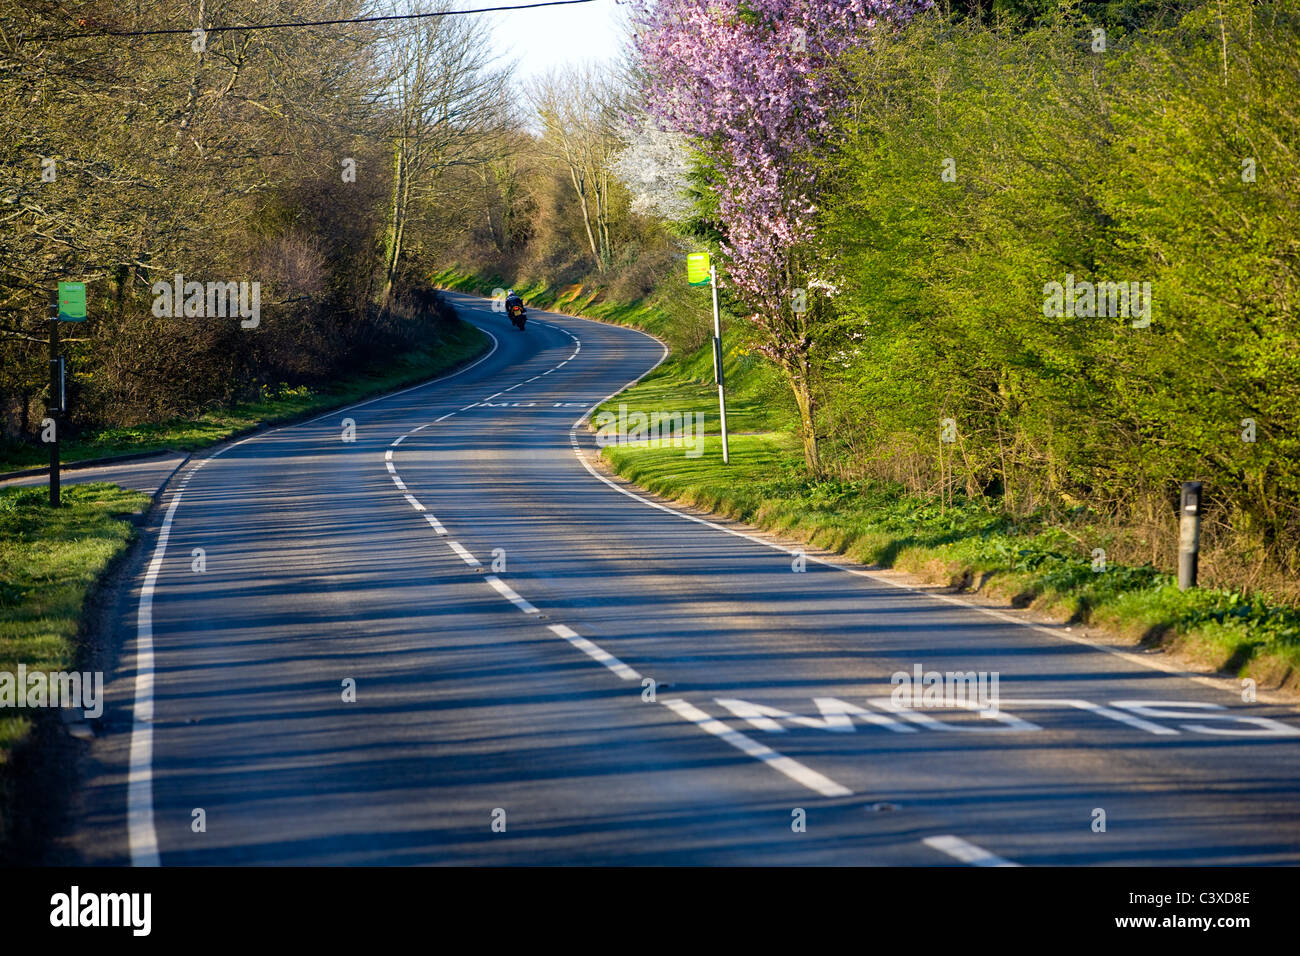 Traffic, Road Signs, Road Markings, A3020, Blackwater  Rookely  Godshill, Isle of Wight, England, UK, - Stock Image